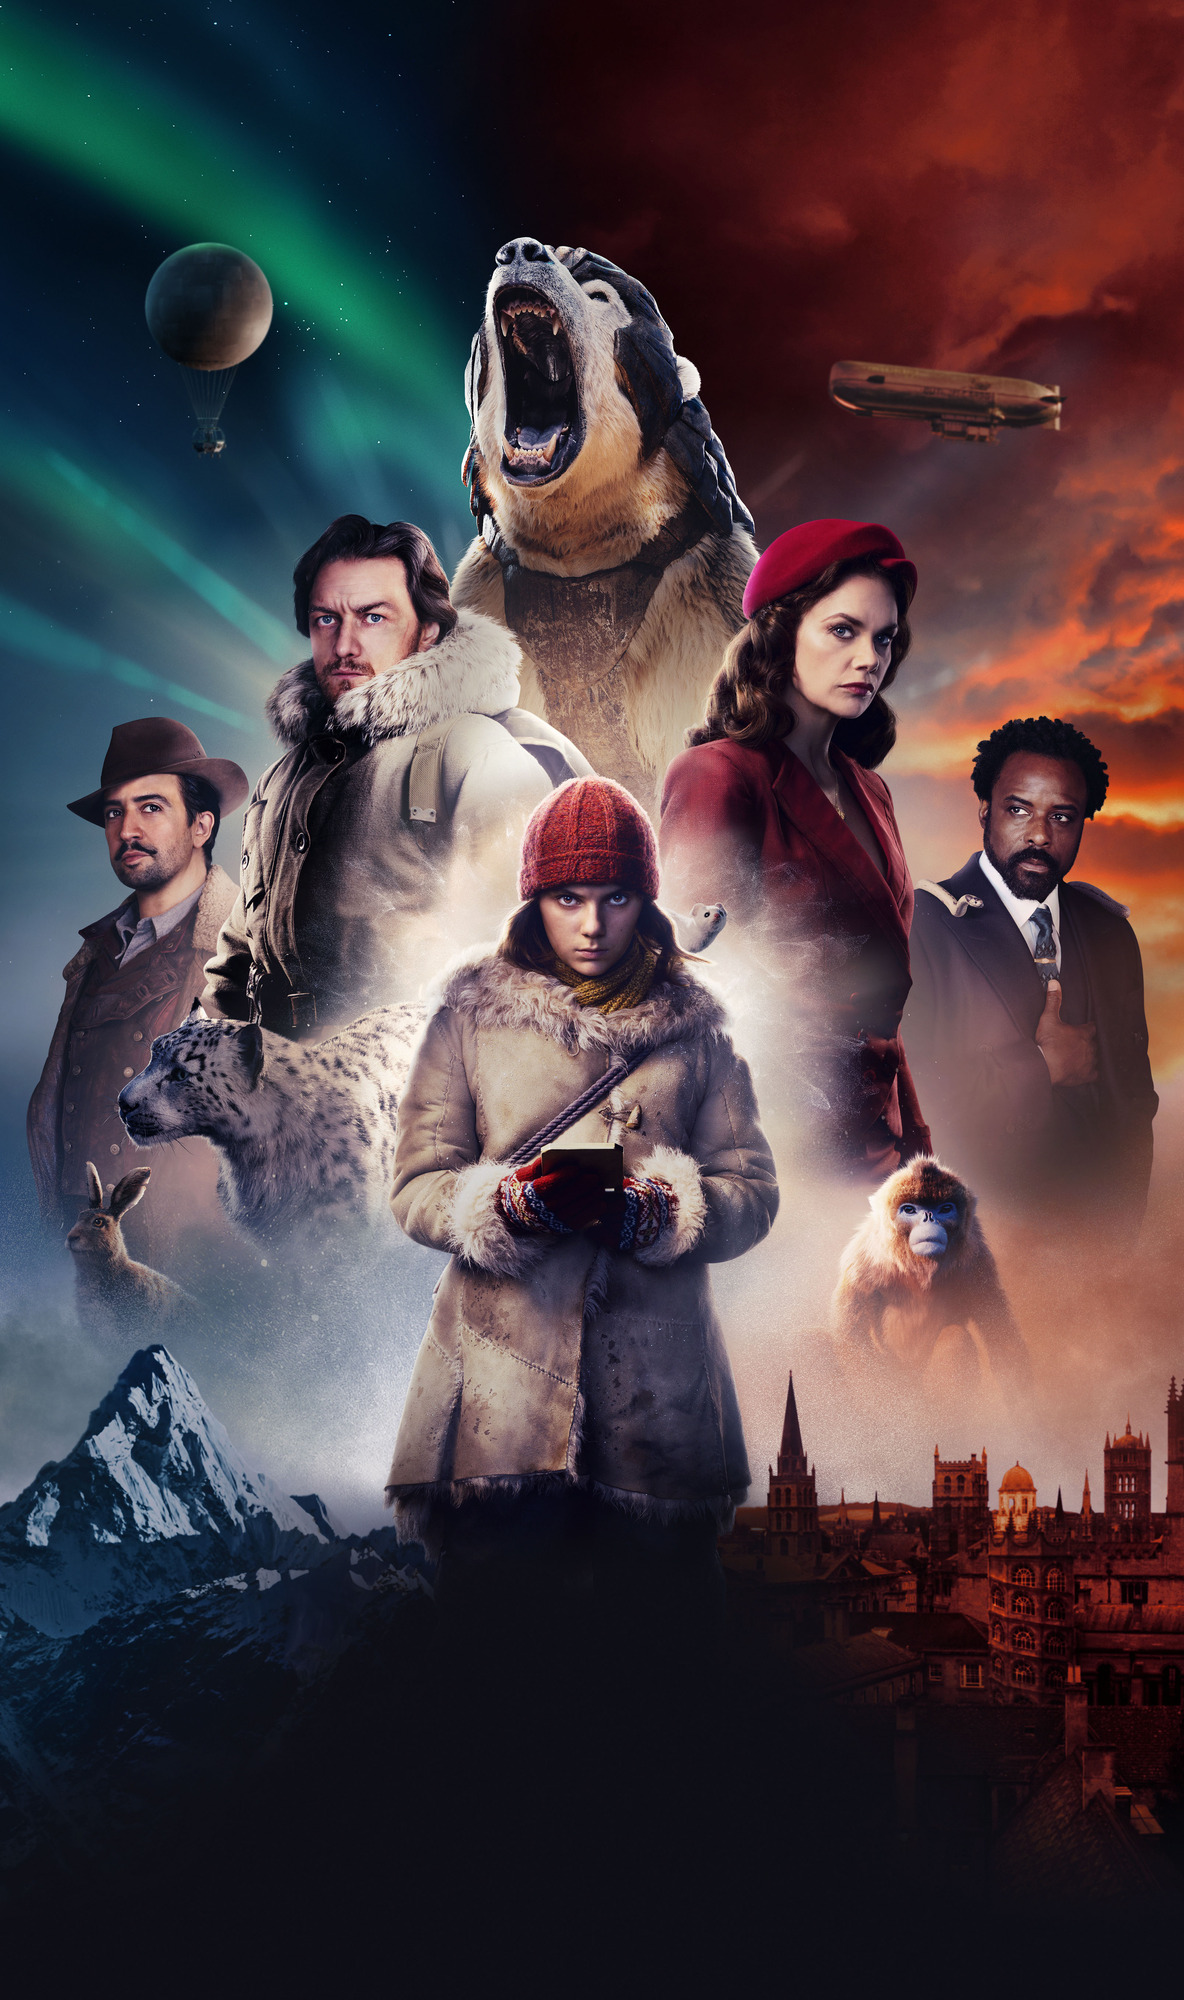 His Dark Materials is about to air on BBC One